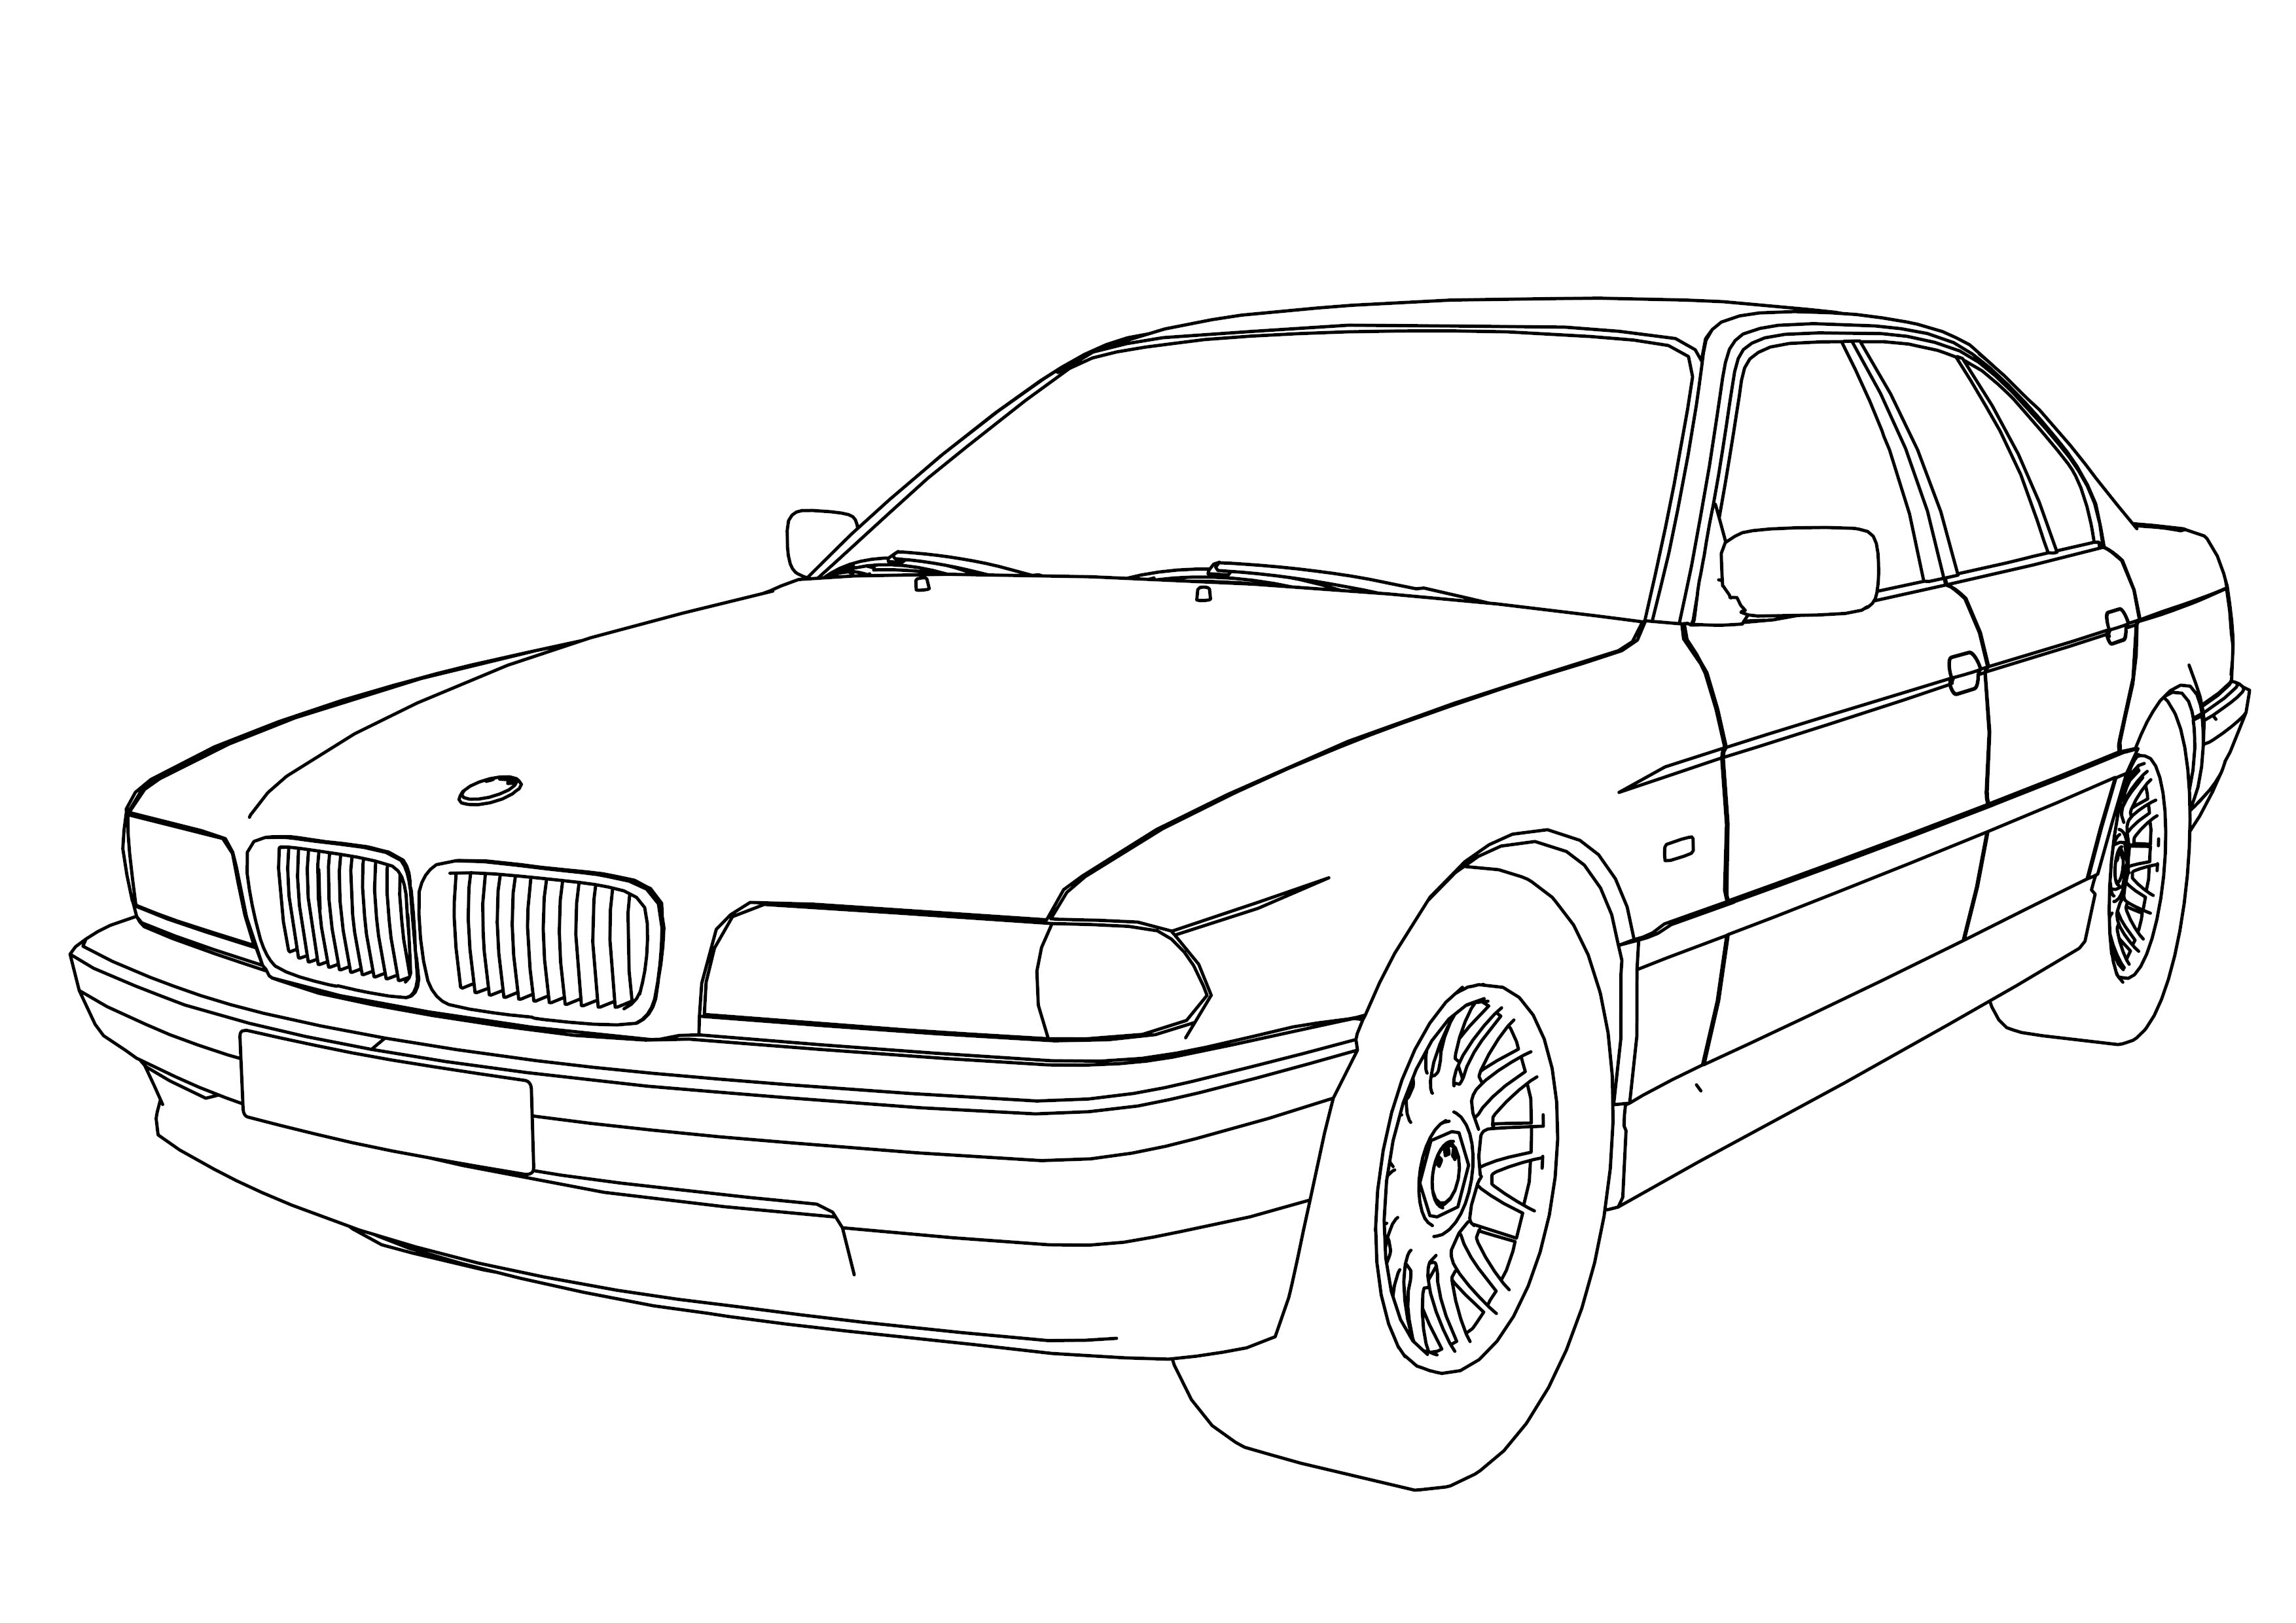 Bmw-750-Model-Car-Coloring-Page